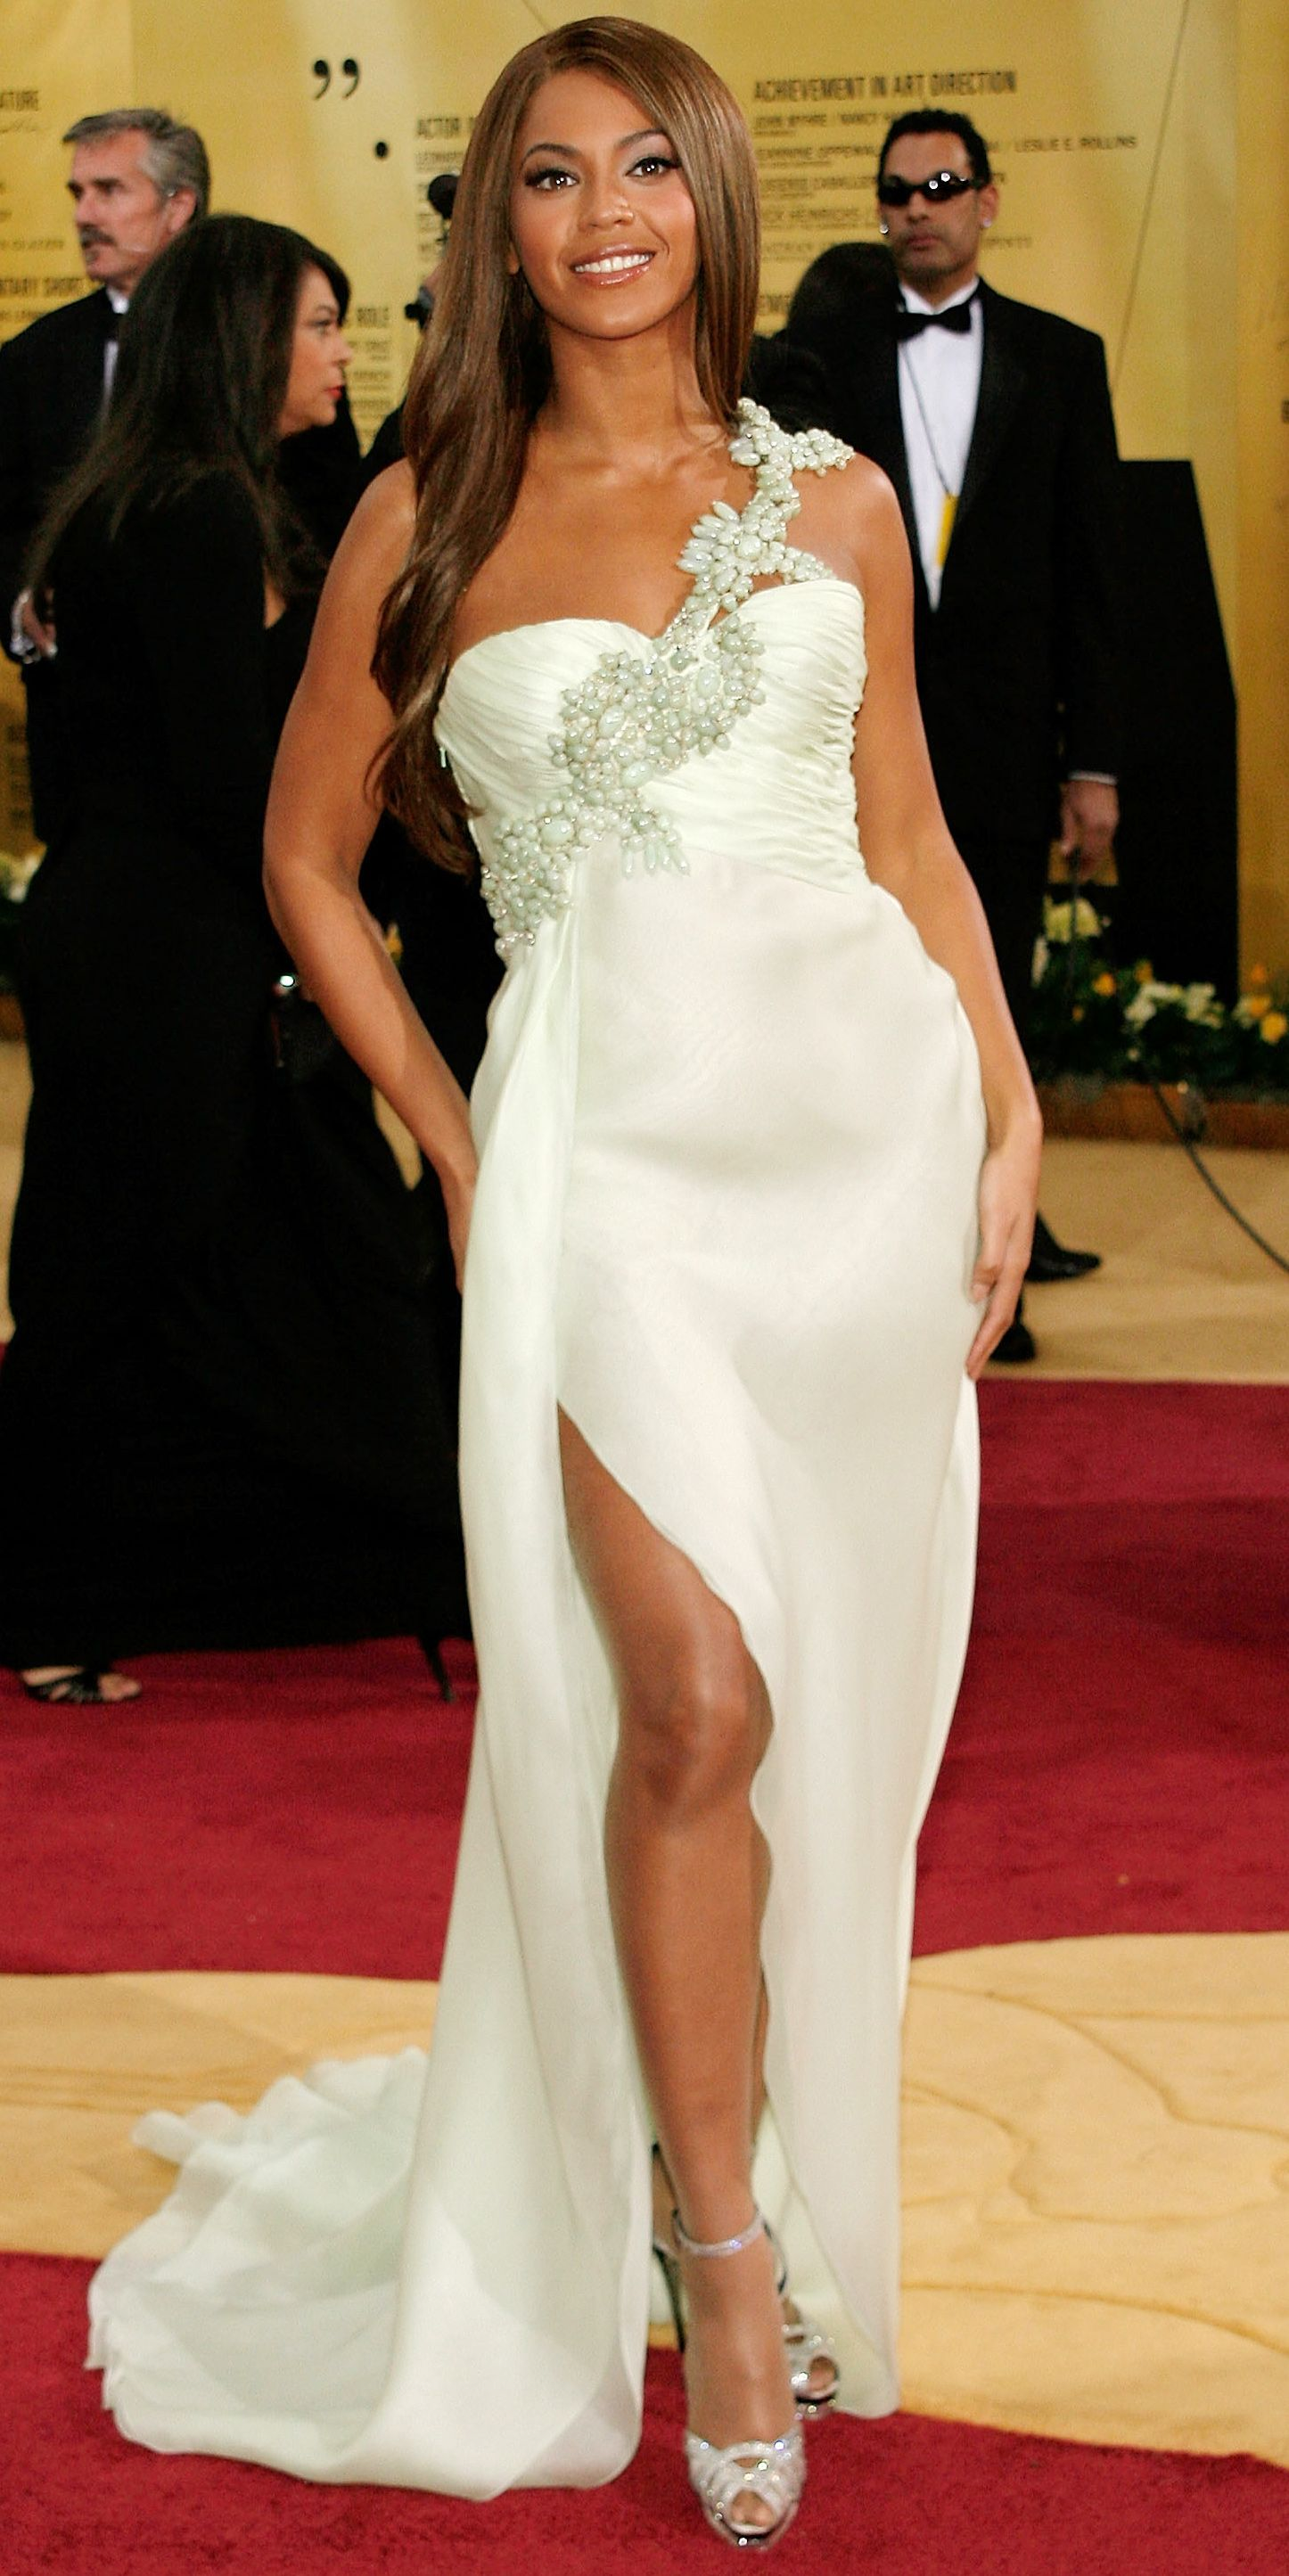 12 Times Beyonce Dressed Like An Actual Bride 2007 Academy Awards From Instyle Com Girls Fashion Dress Celebrity Dresses Red Wedding Dresses [ 2890 x 1446 Pixel ]